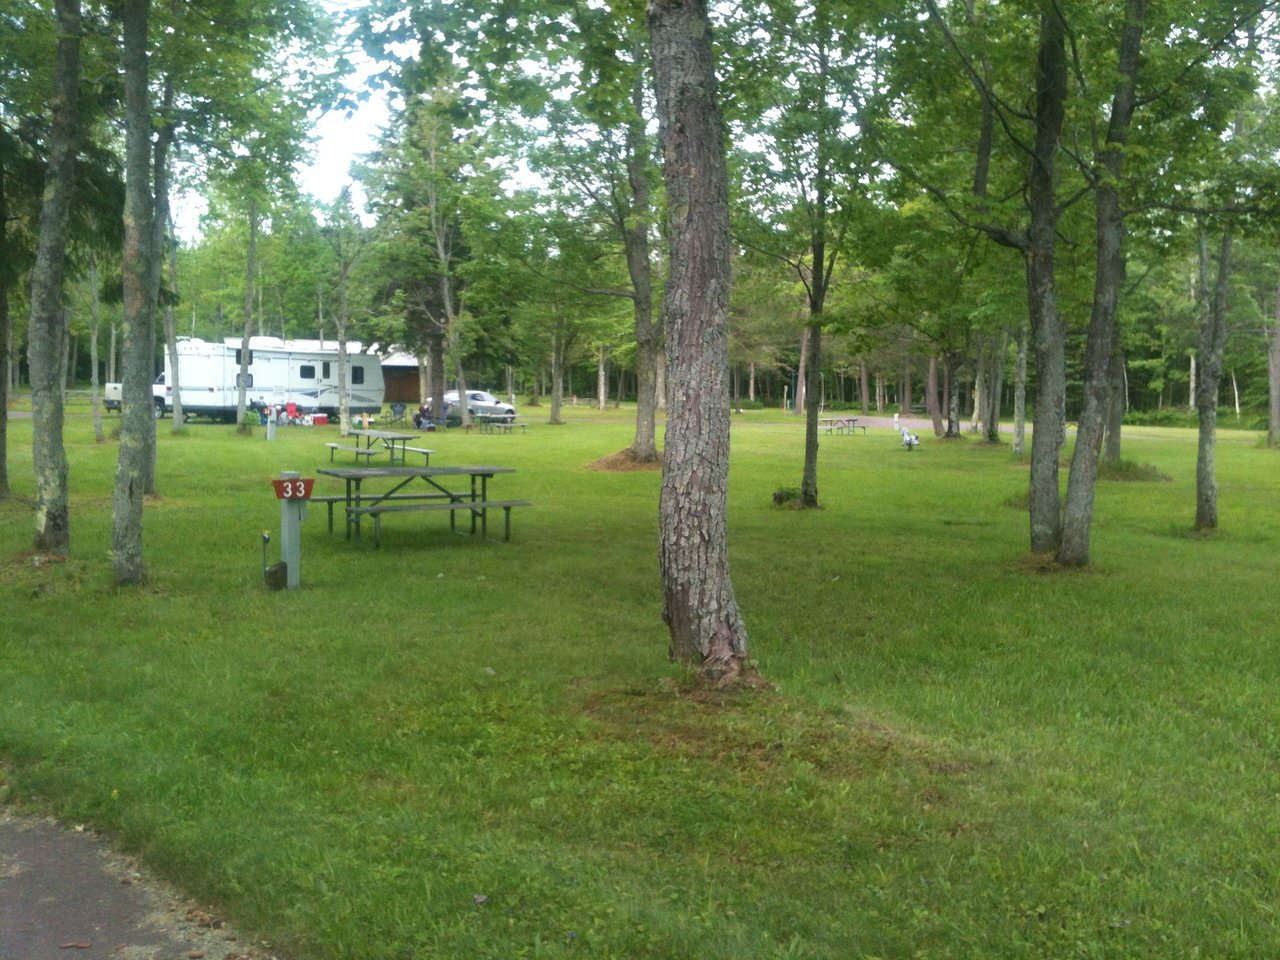 UNION RIVER 'BIG BEAR' CAMPGROUND - Updated 2019 Prices